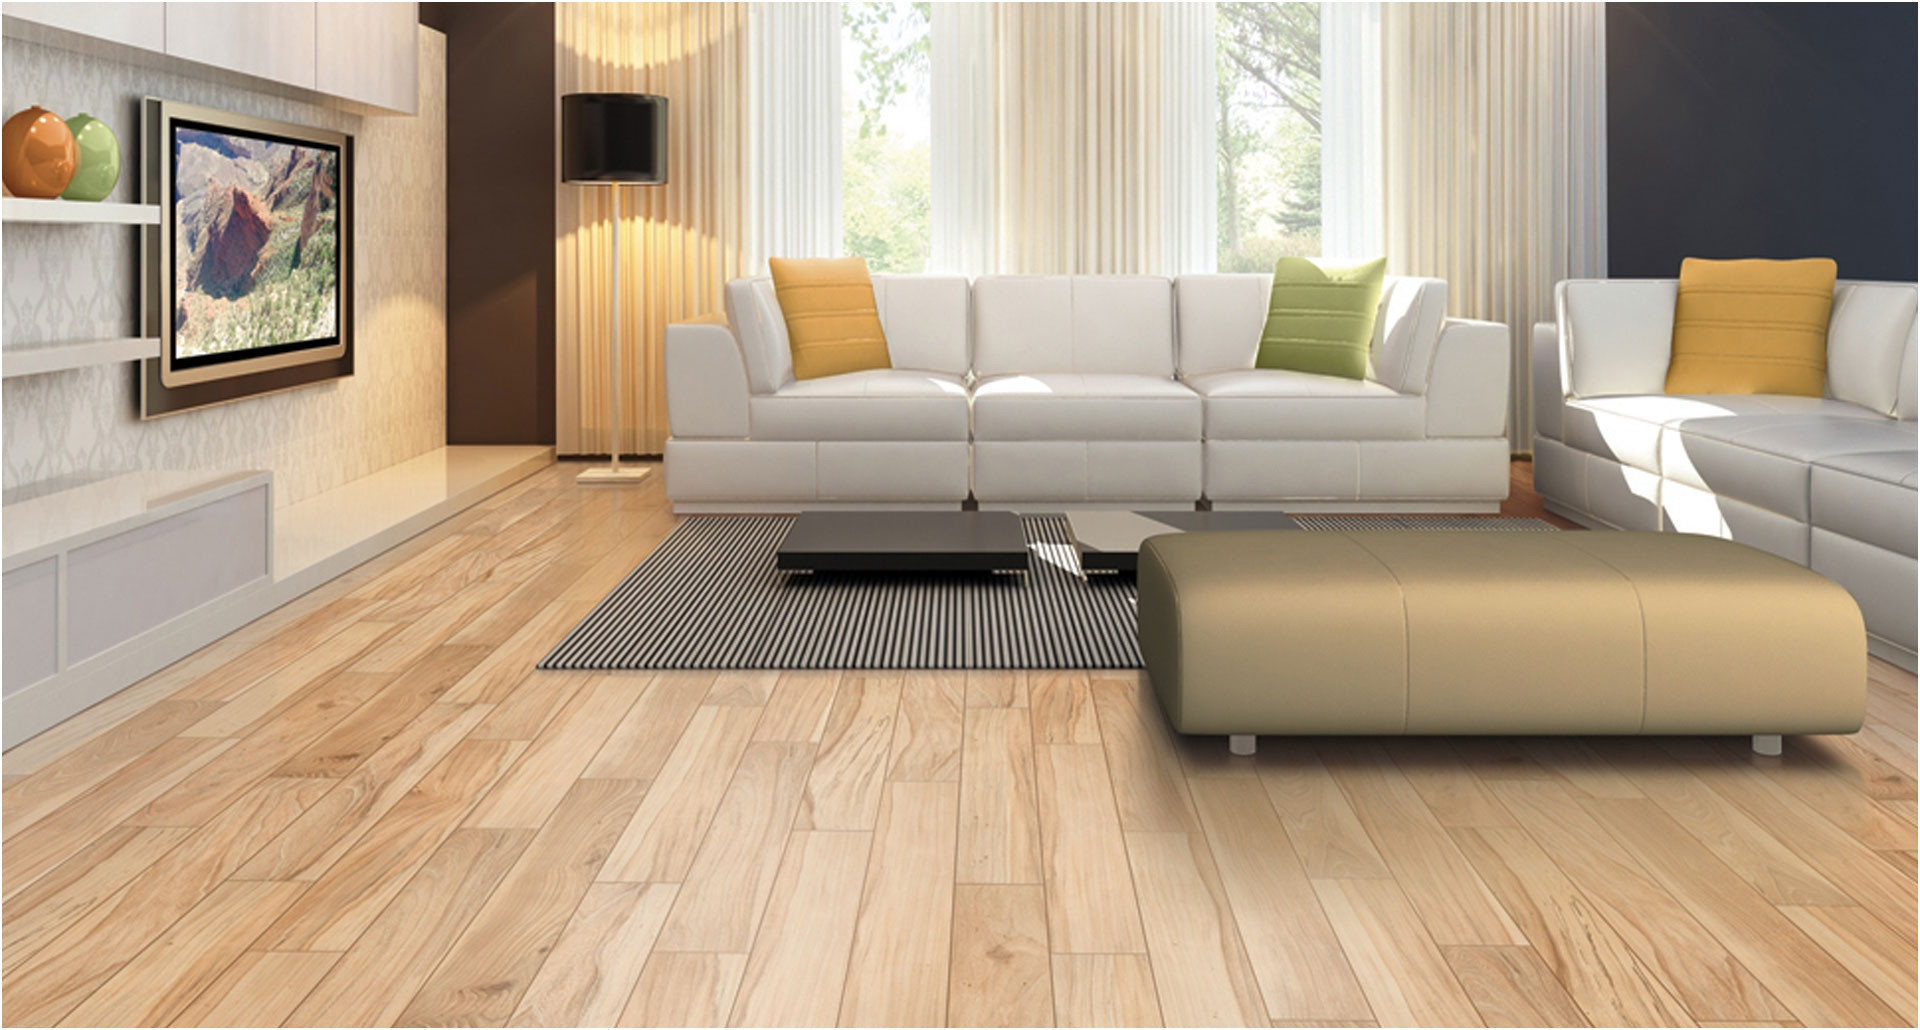 how to install hardwood floors lowes of water resistant laminate flooring lowes collection inspirations inside water resistant laminate flooring lowes collection inspirations lowes wood laminate lowes laminate floor